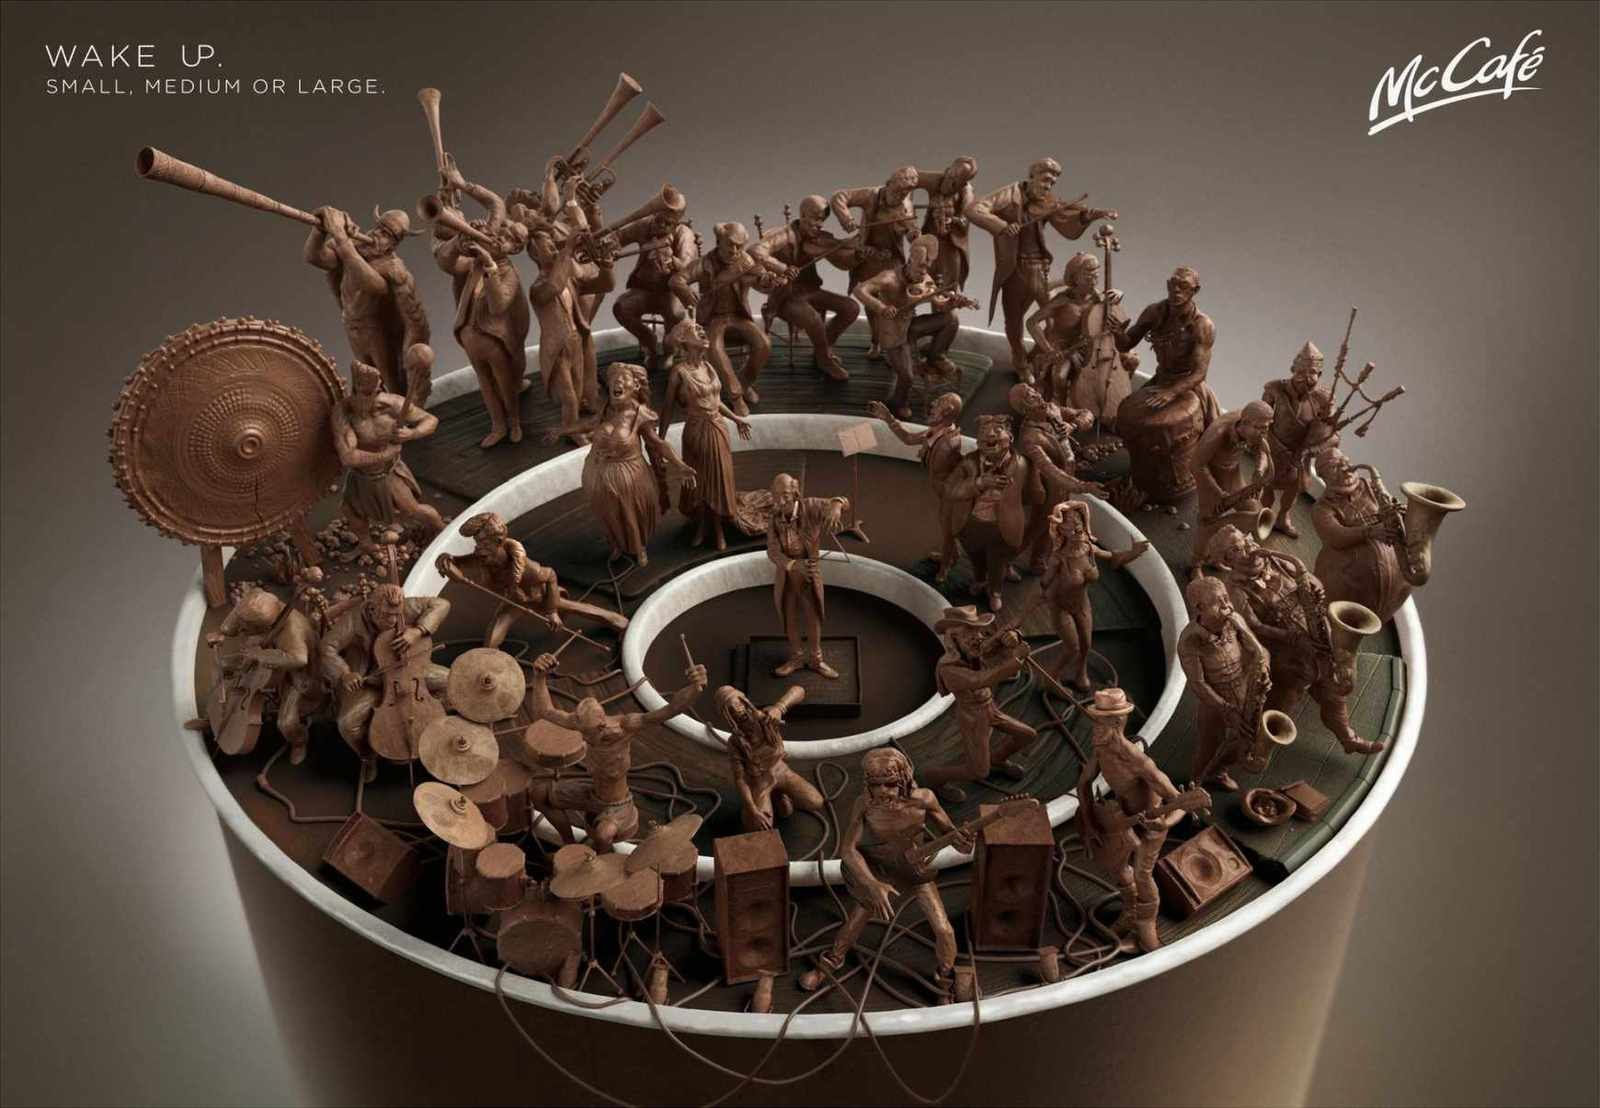 """Wake up. Small, medium or large"" 